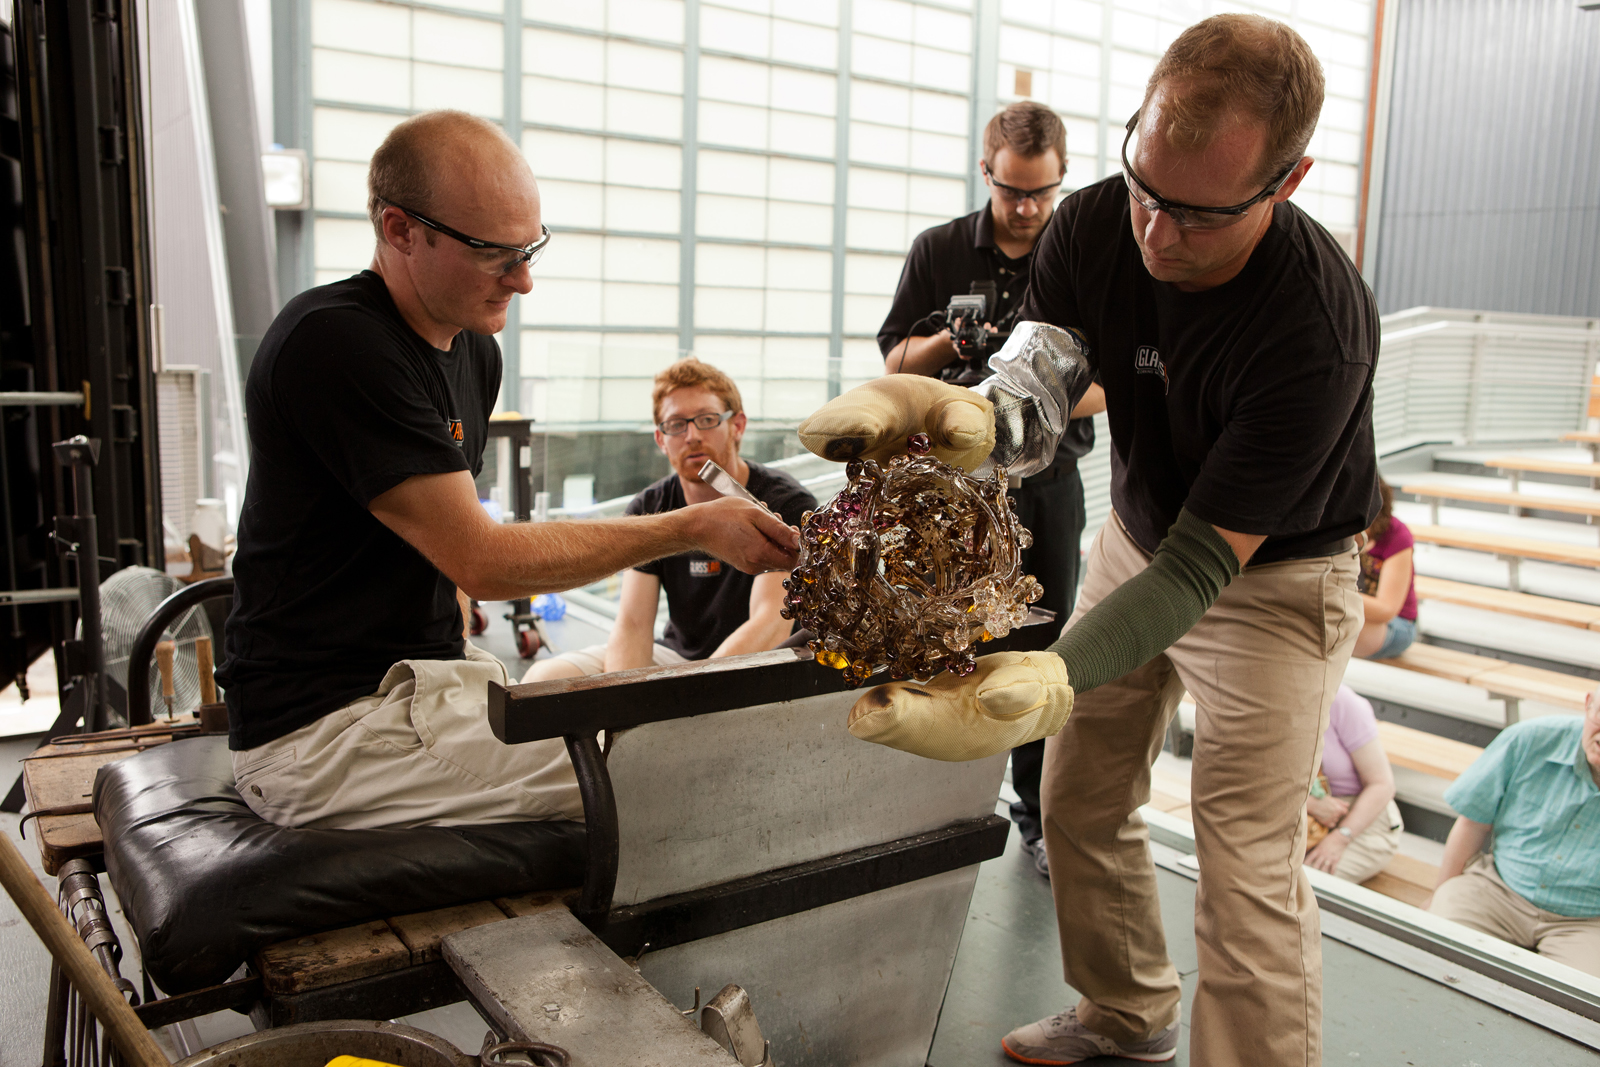 Glassmakers G Brian Juk and Eric Meek work with designer Michele Oka Doner at GlassLab in Corning, August 2012